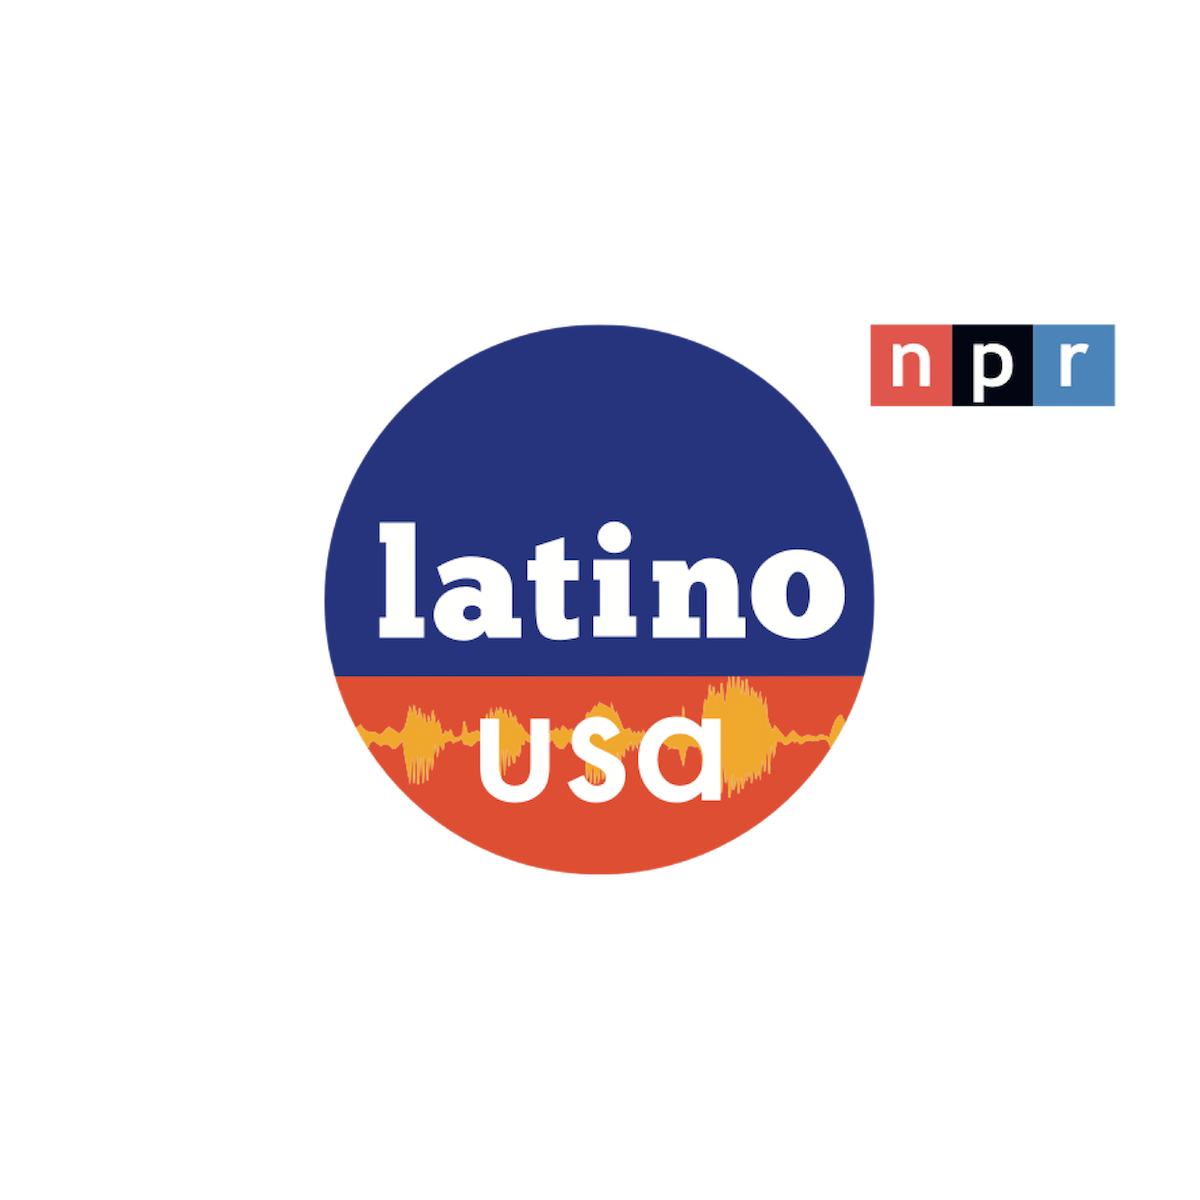 Who Really Profits from For Profit Colleges for NPR's Latino USA -